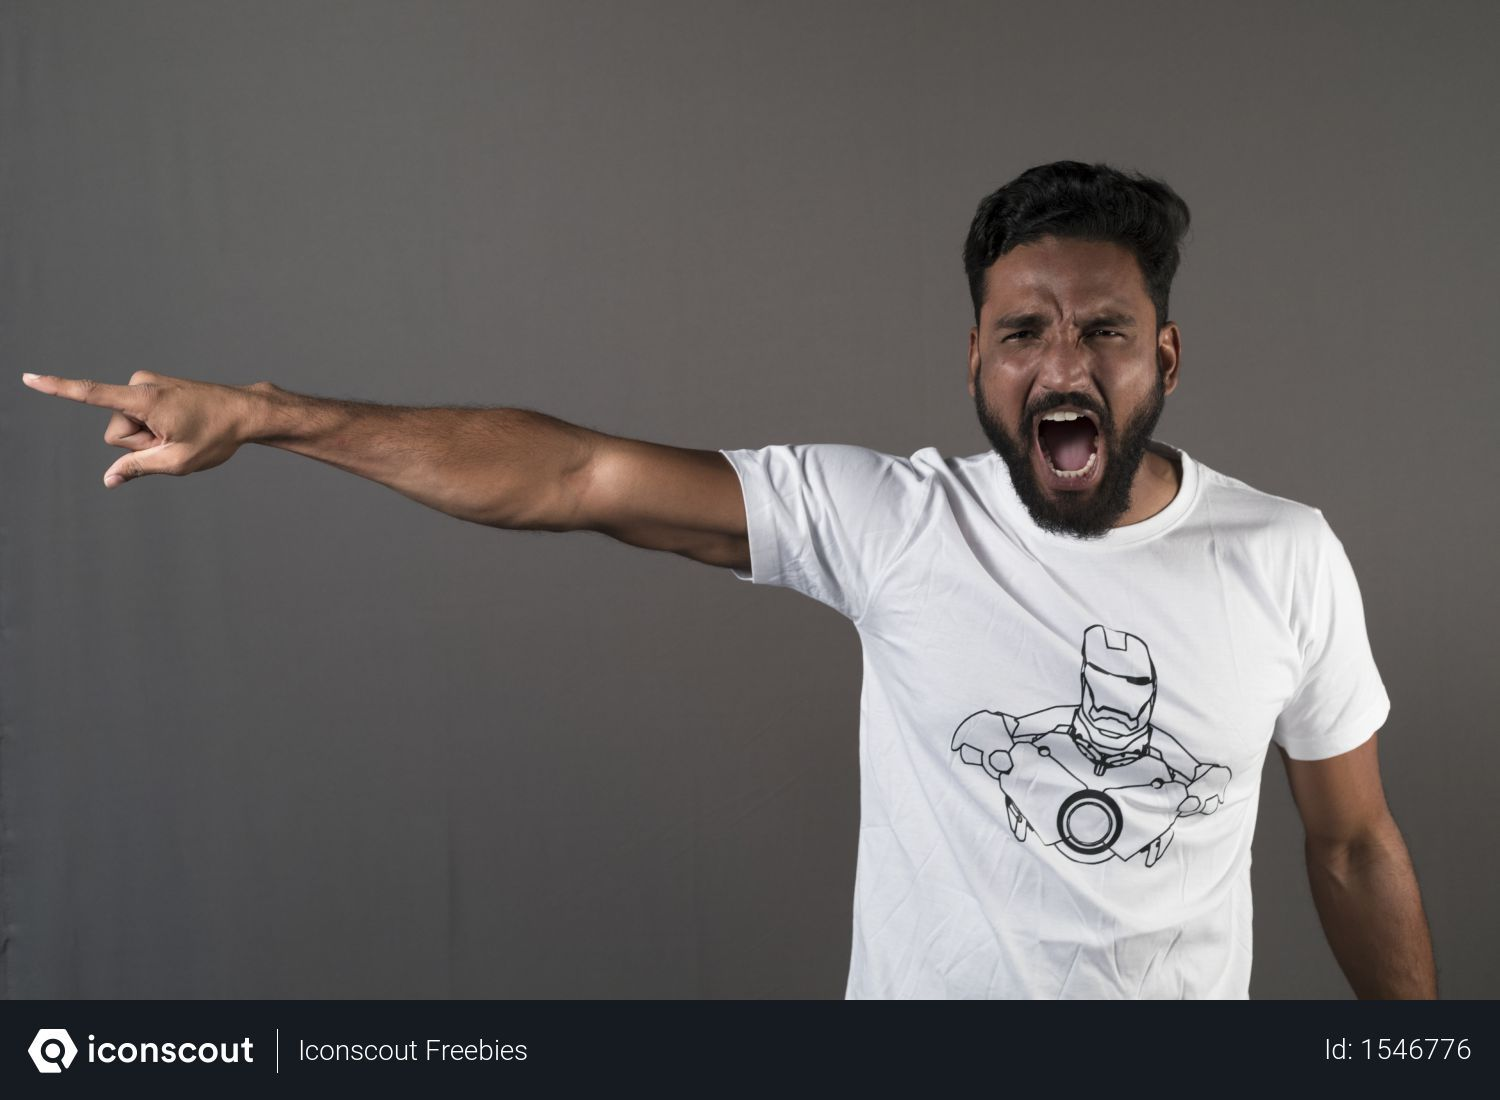 Free Angry Man Shouting And Pointing In Left With Grey Background Photo Download In Png Jpg Format Gray Background Photo Man